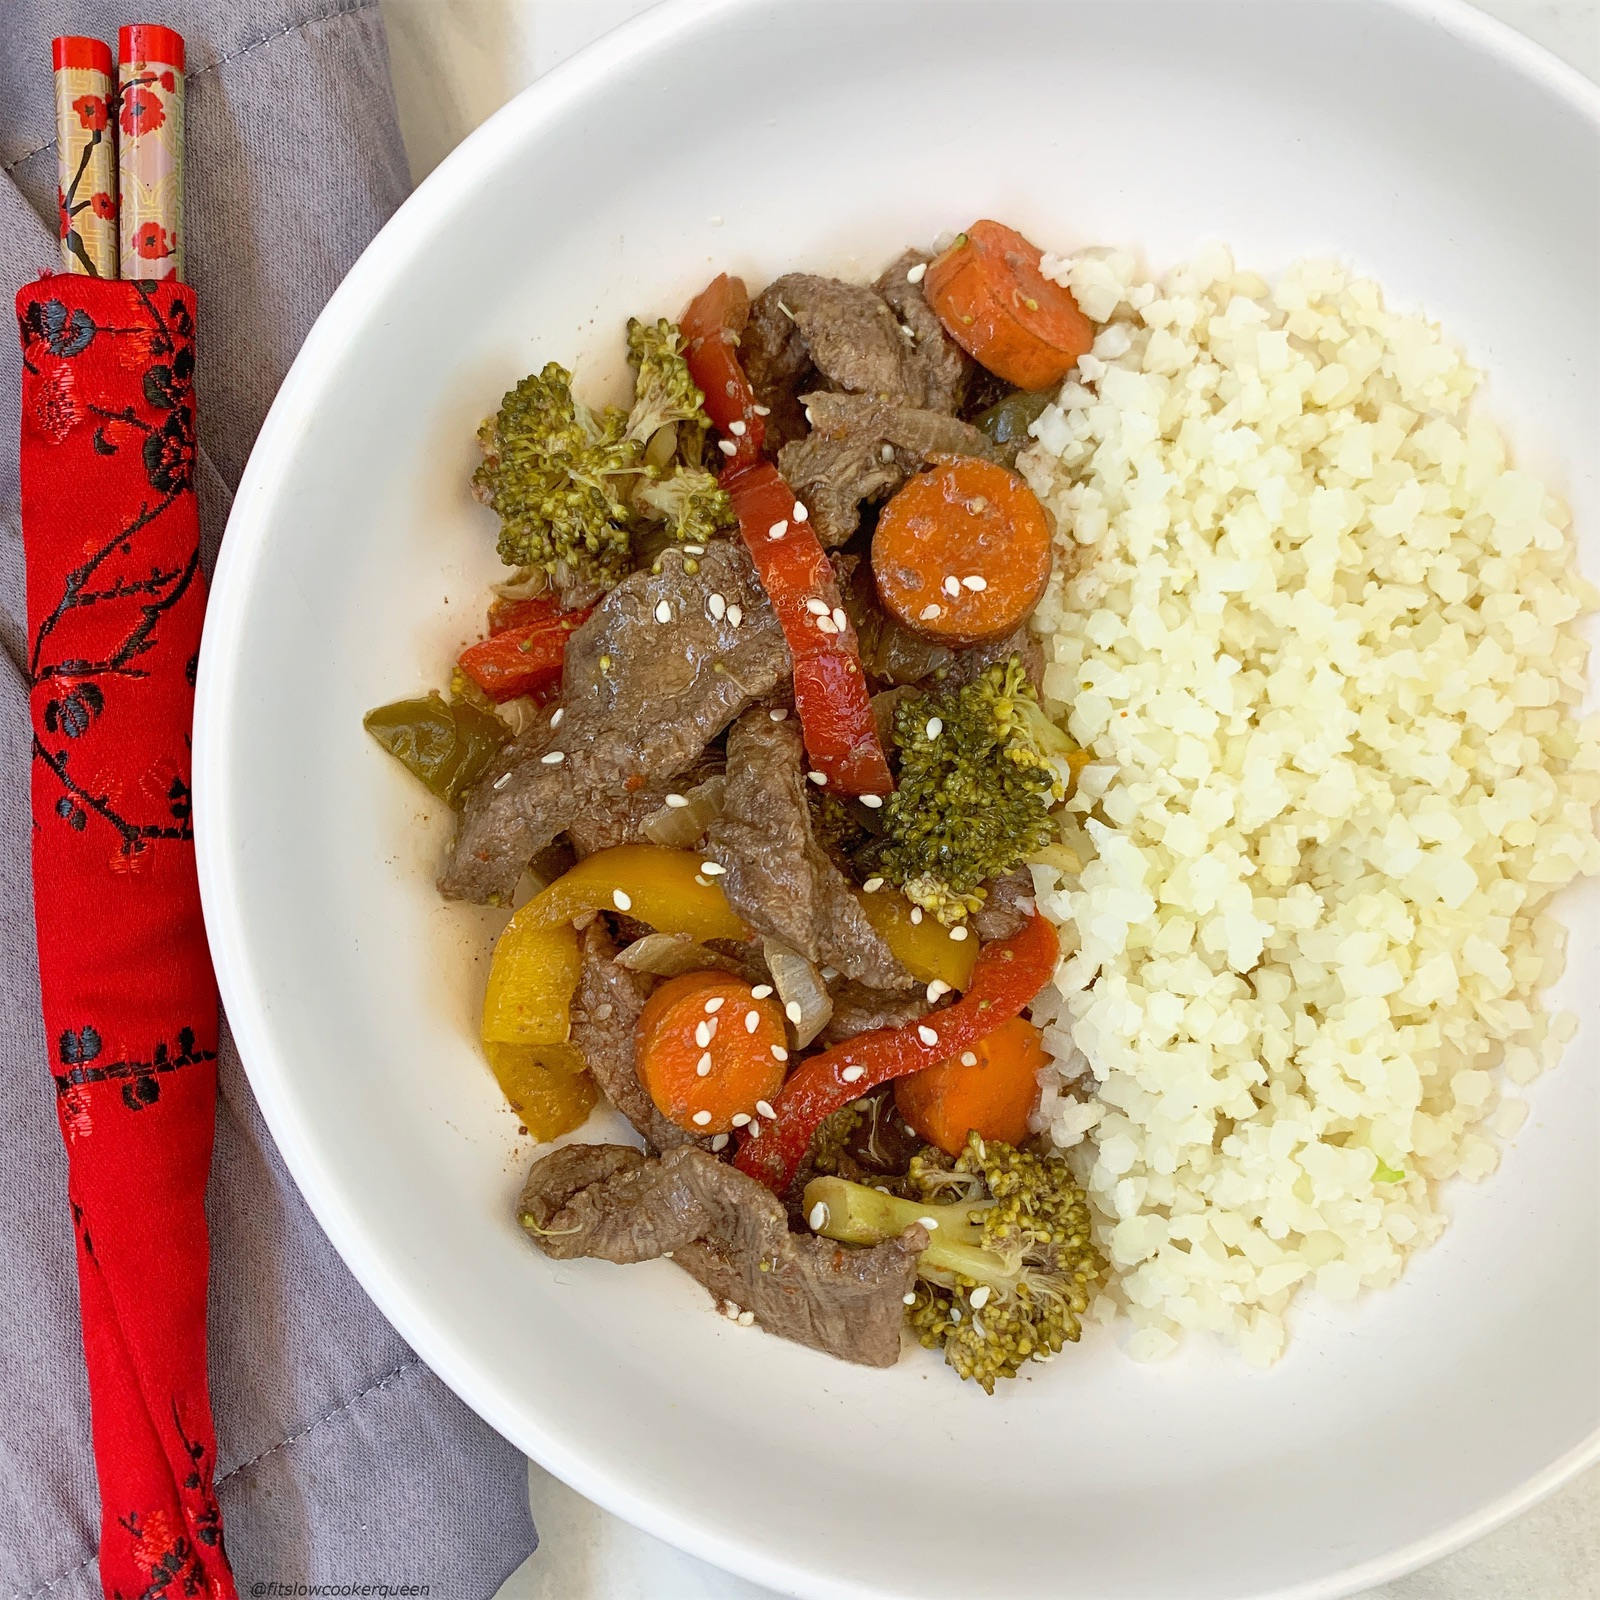 Healthy beef stir-fry made in the slow cooker or Instant Pot! This paleo, whole30, and gluten-free recipe is healthy but still has the flavors of your take-out.